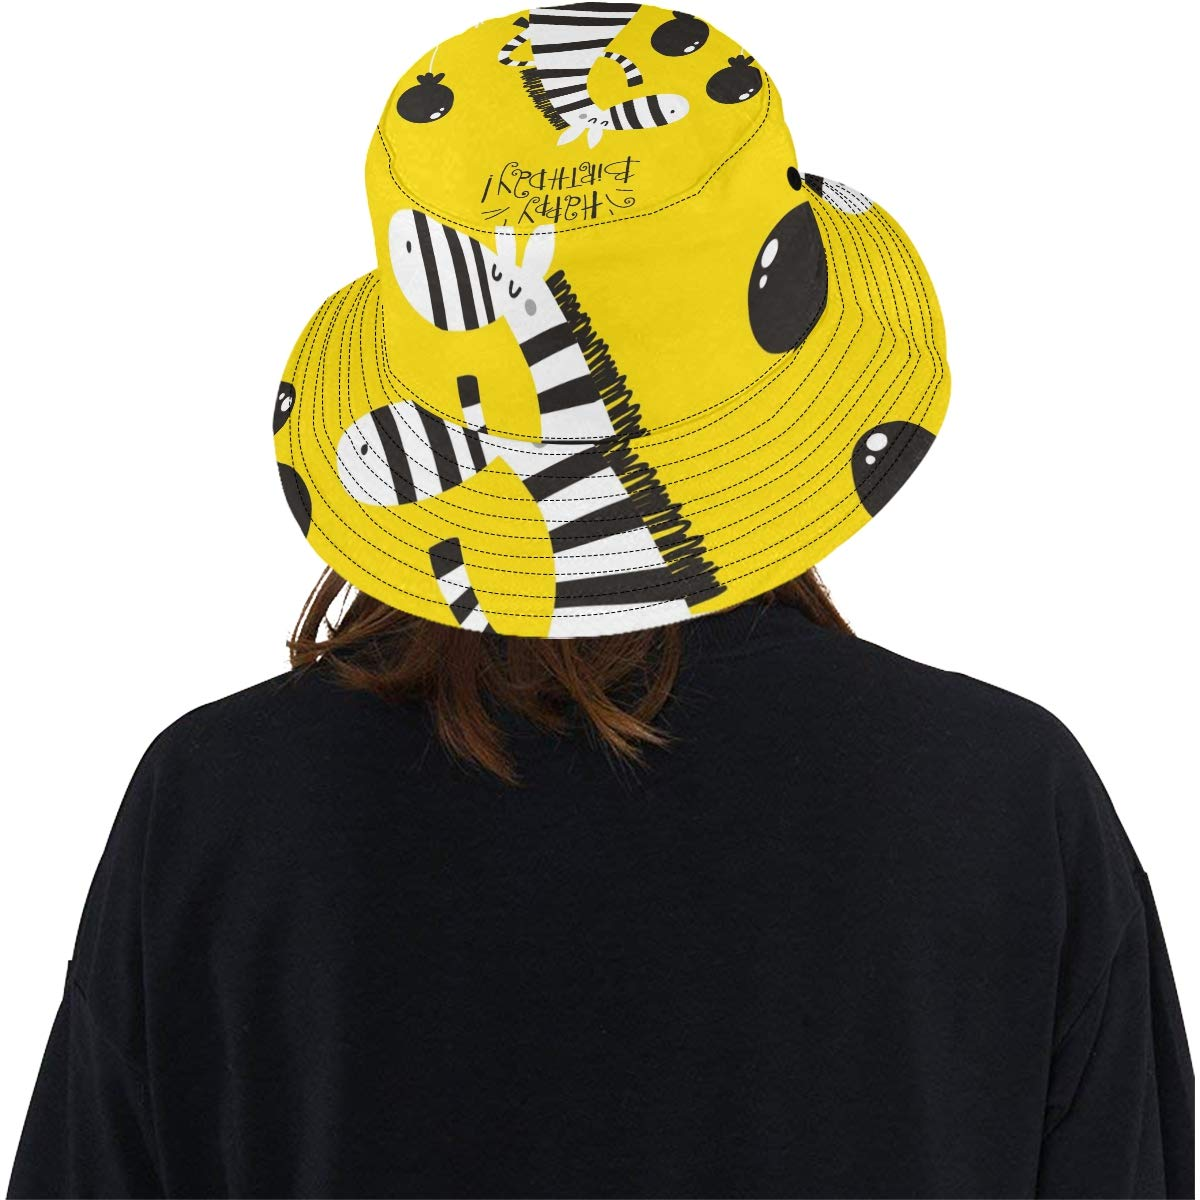 Cute Zebra Baby Art Funny New Summer Unisex Cotton Fashion Fishing Sun Bucket Hats for Kid Teens Women and Men with Customize Top Packable Fisherman Cap for Outdoor Travel